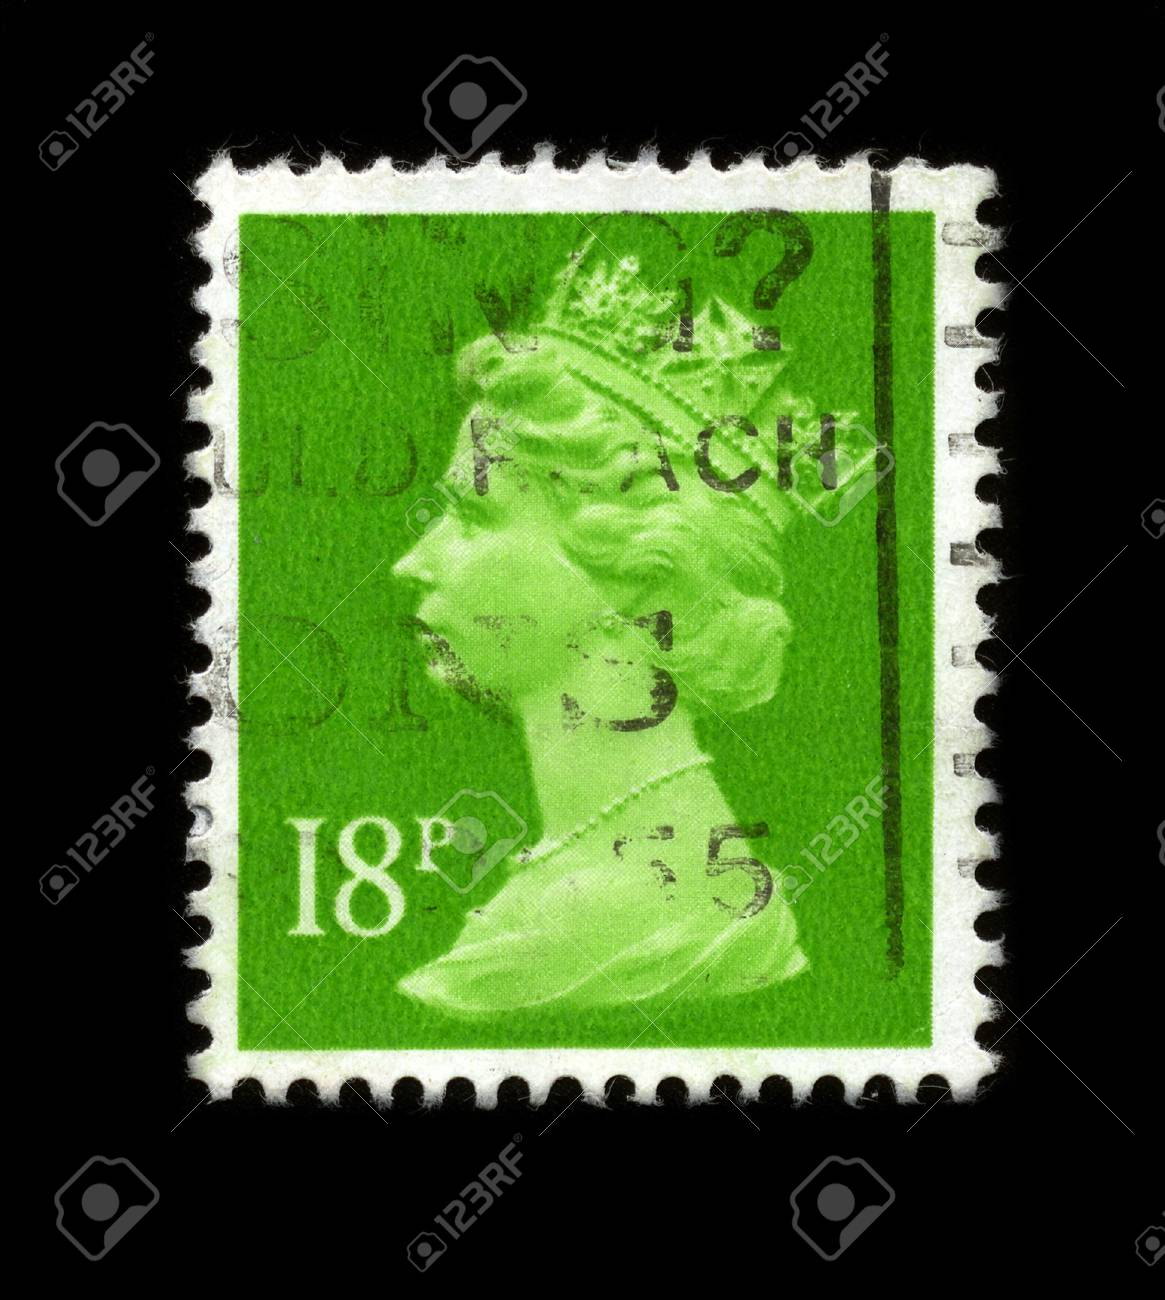 UNITED KINGDOM - CIRCA 1997: An English Used First Class Postage Stamp showing Portrait of Queen Elizabeth in light green circa 1997. Stock Photo - 7358094